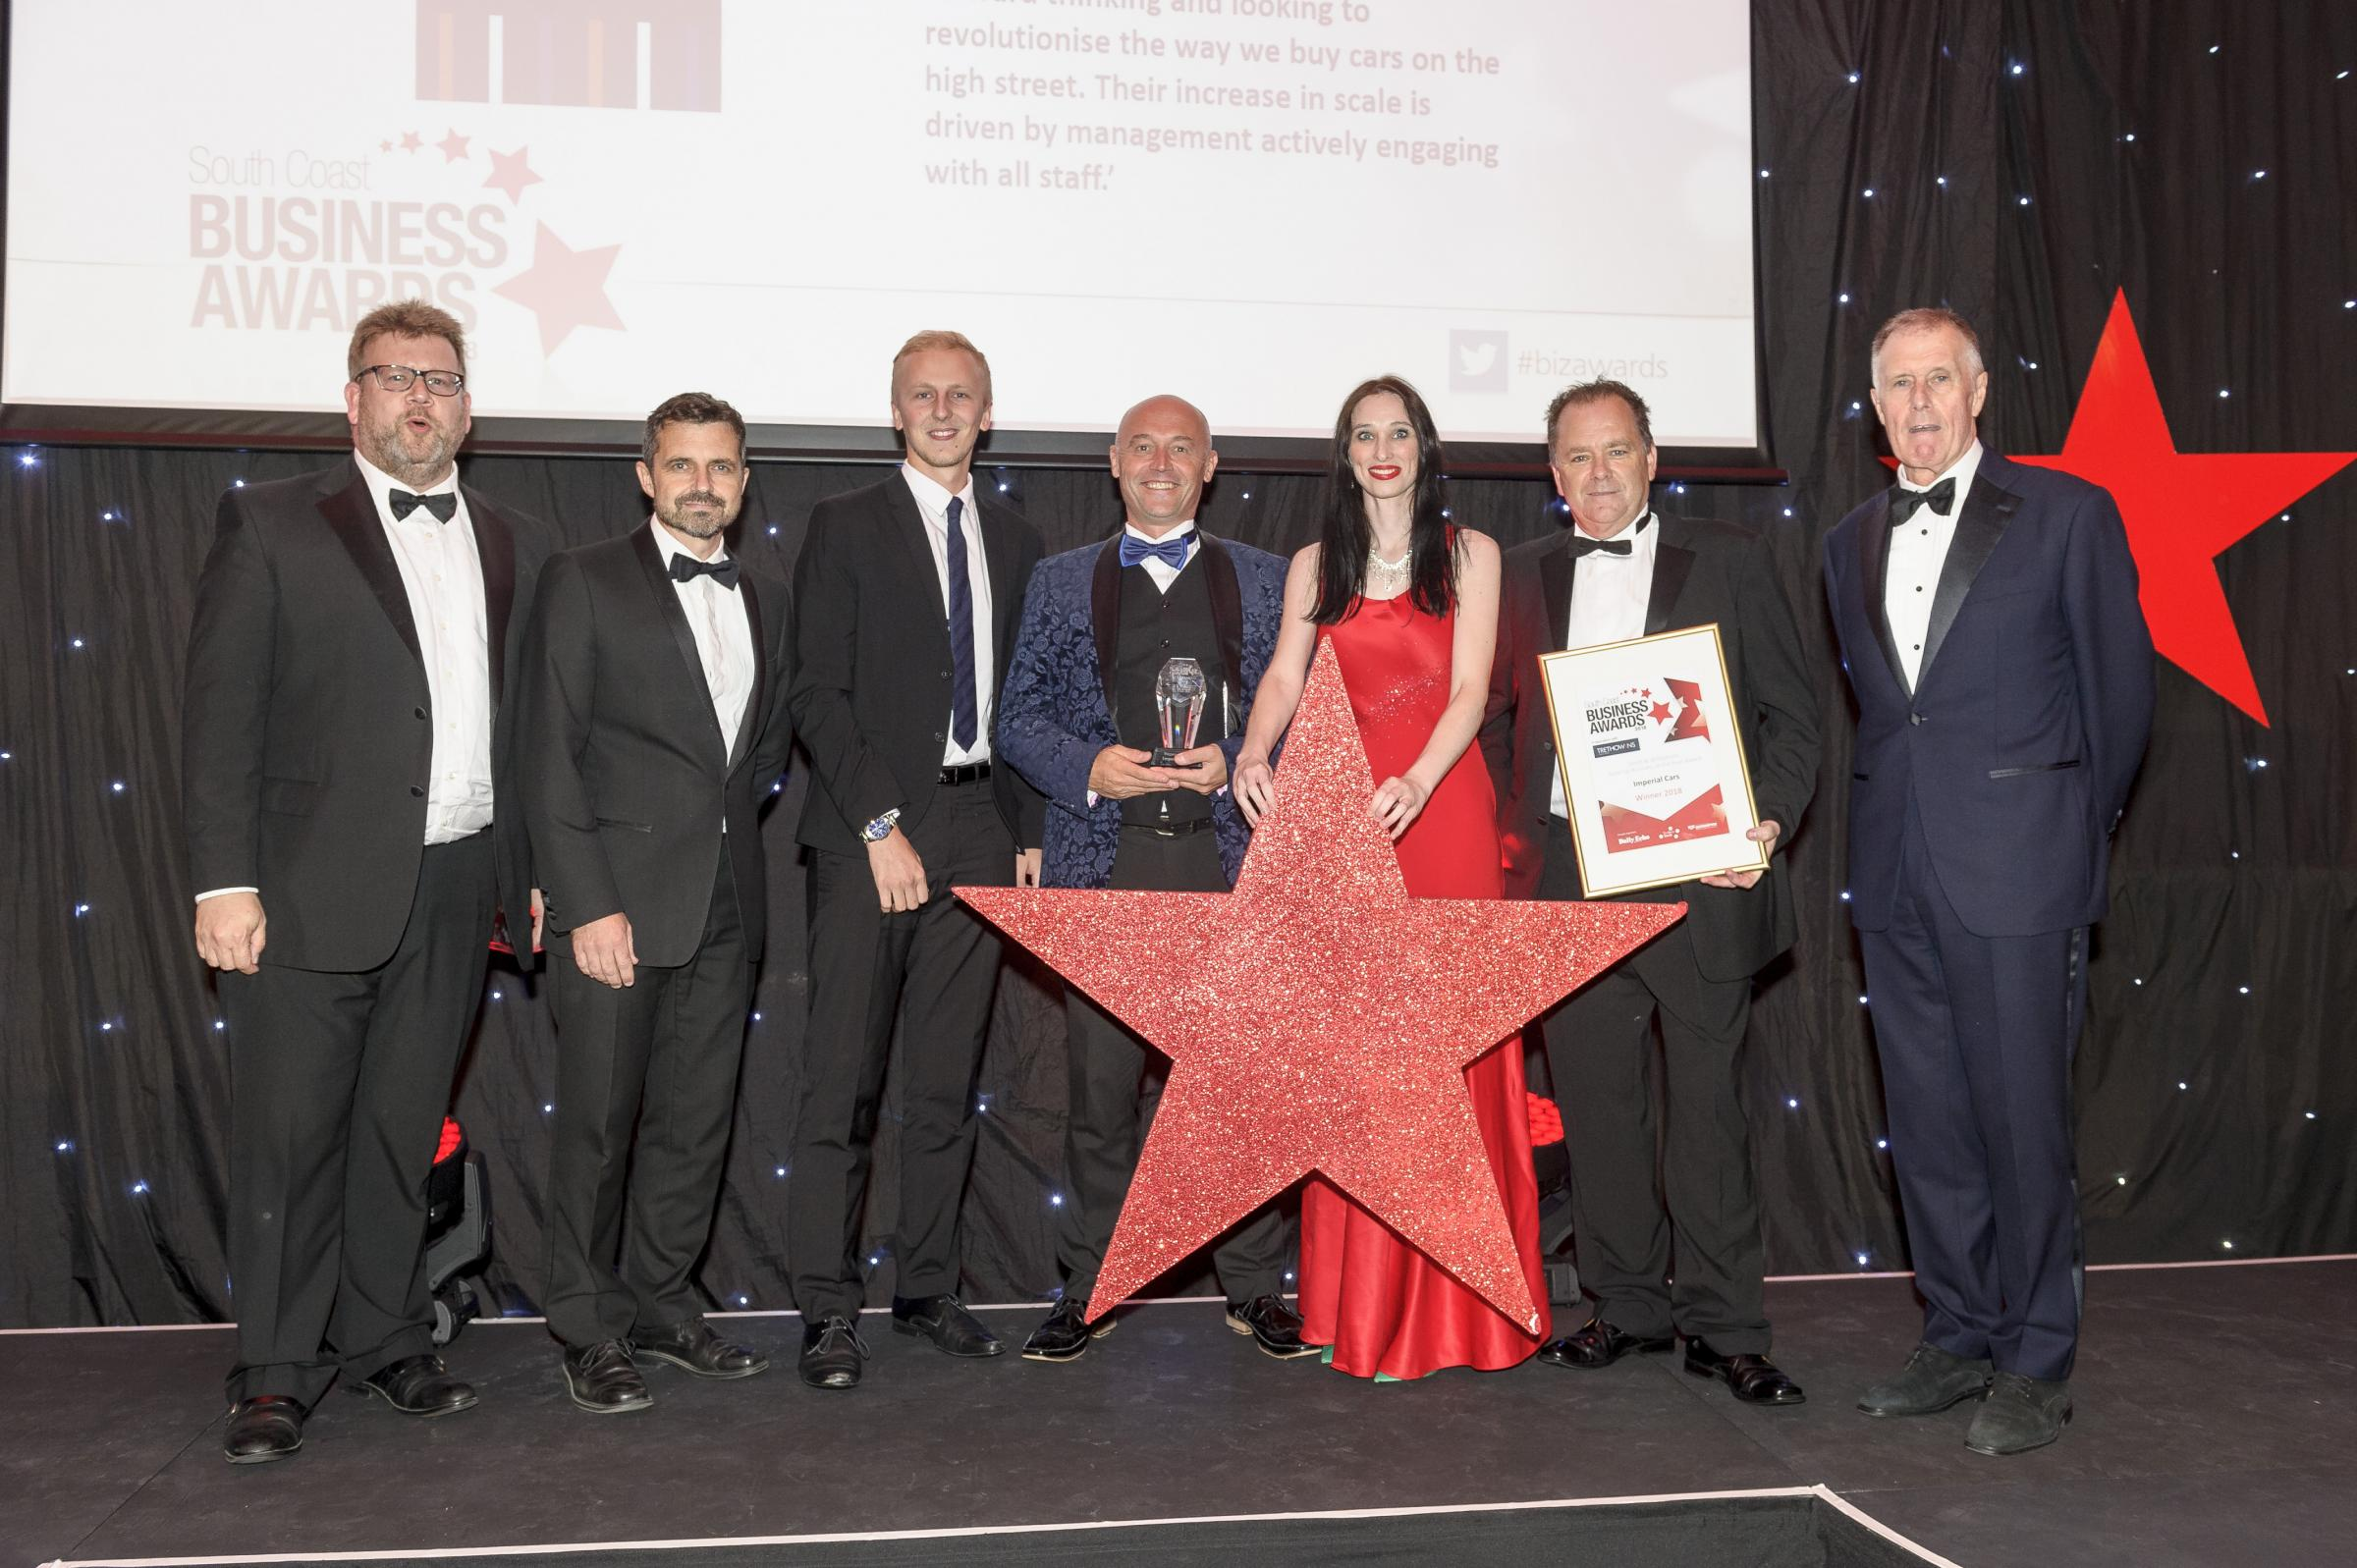 South Coast Business  with Sir Geoff . Smith & Williamson Scale up business of the year winners Imperial cars.